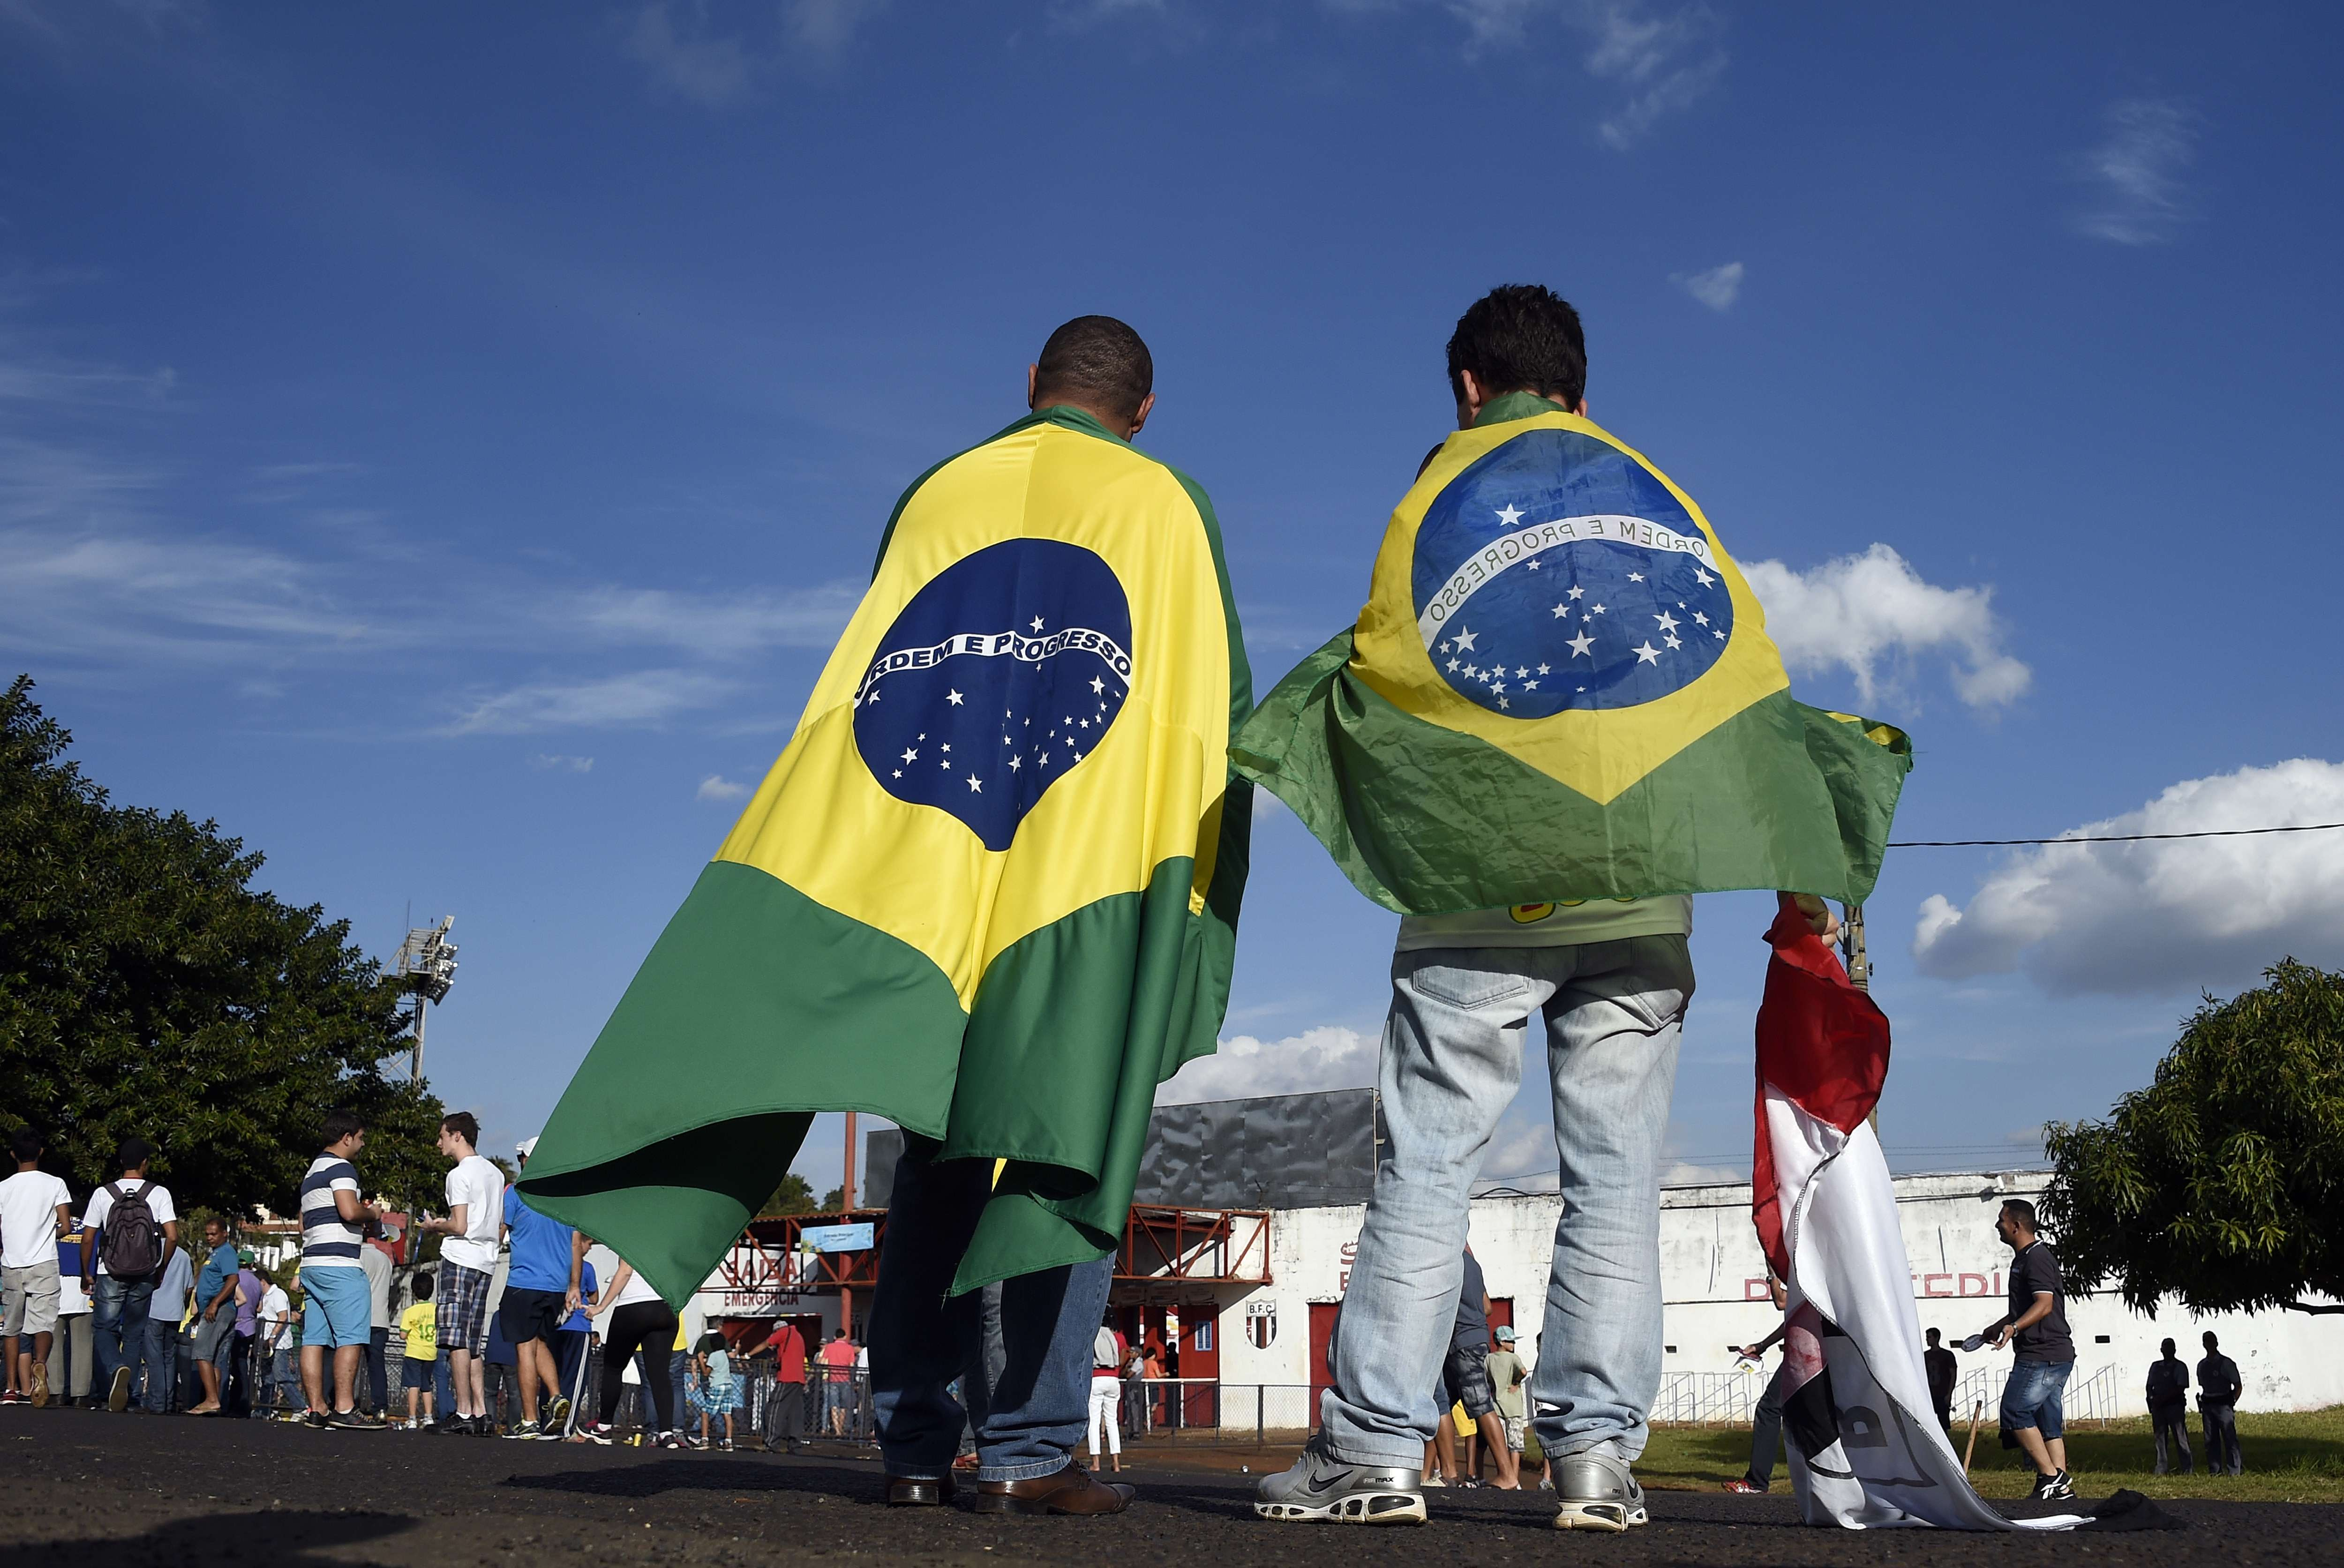 People wearing Brazilian flags arrive at the Santa Cruz Stadium in Ribeirao Prato to attend a France's national football team training session on June 10, 2014, a few days prior to the start of the 2014 FIFA World Cup in Brazil.      (AFP PHOTO / FRANCK FIFE)